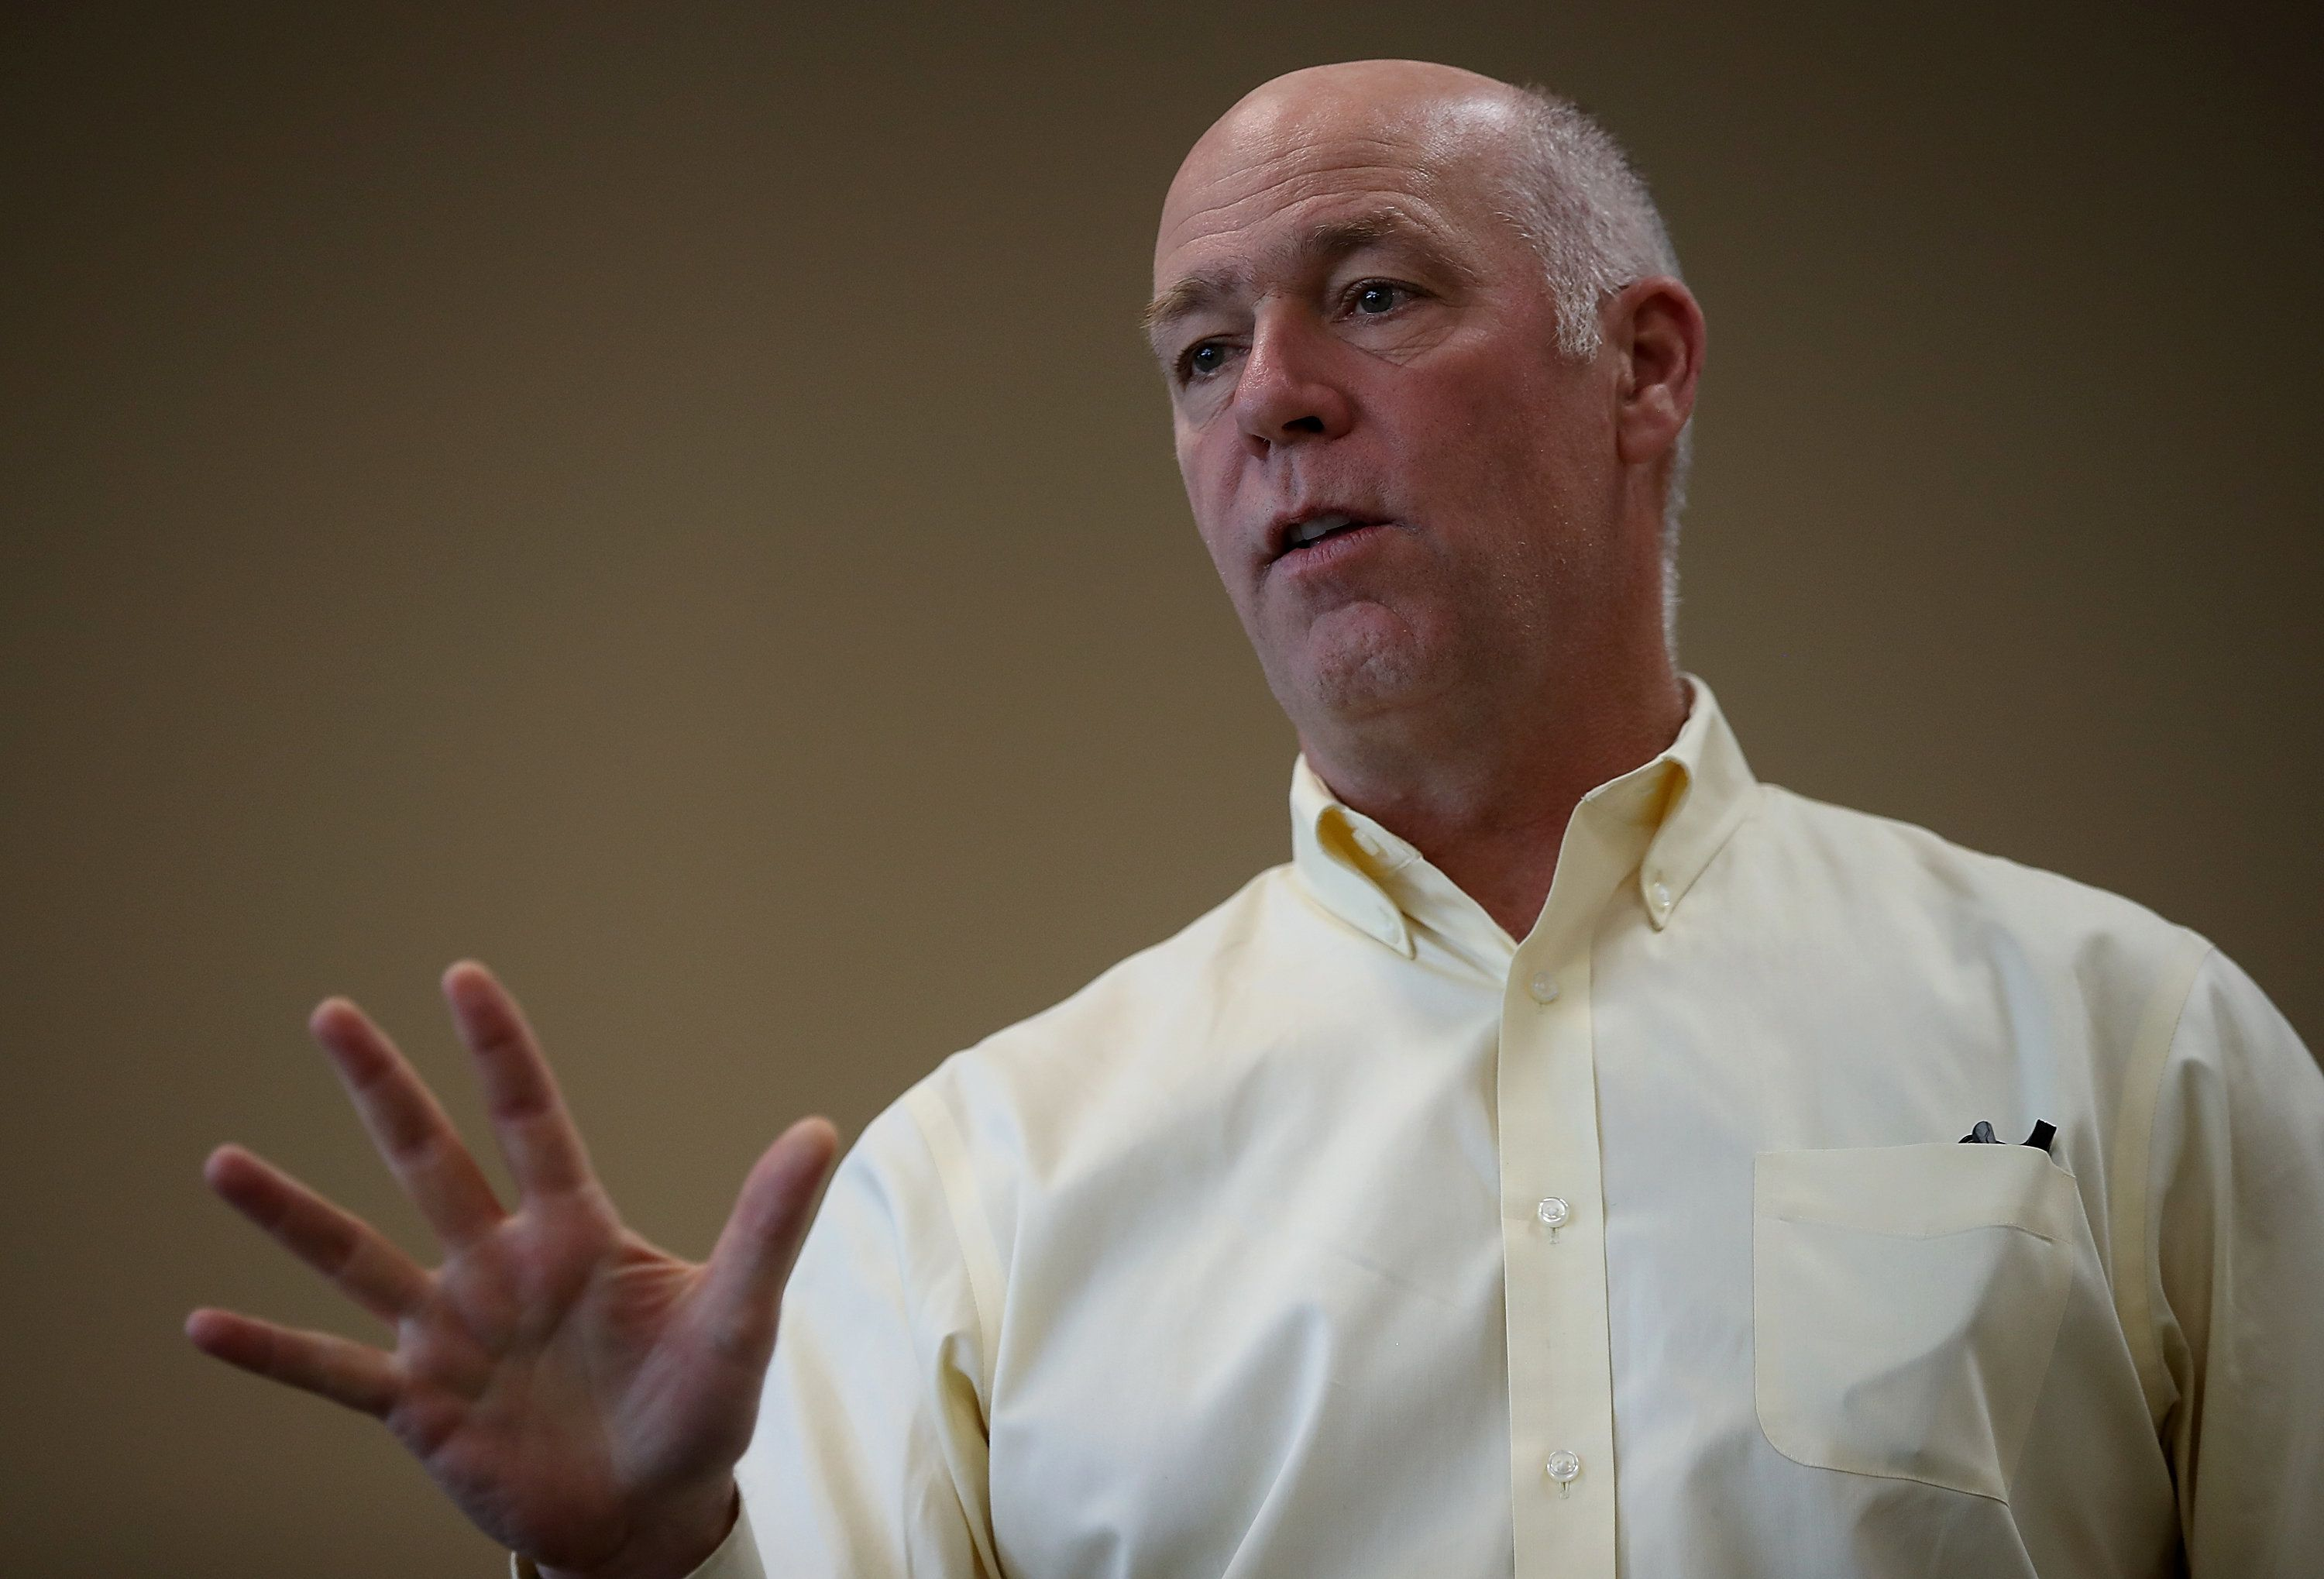 MISSOULA, MT - MAY 24:  Republican congressional candidate Greg Gianforte speaks to supporters during a campaign meet and greet at Lambros Real Estate on May 24, 2017 in Missoula, Montana.  Greg Gianforte is campaigning throughout Montana ahead of a May 25 special election to fill Montana's single congressional seat. Gianforte is in a tight race against democrat Rob Quist.  (Photo by Justin Sullivan/Getty Images)